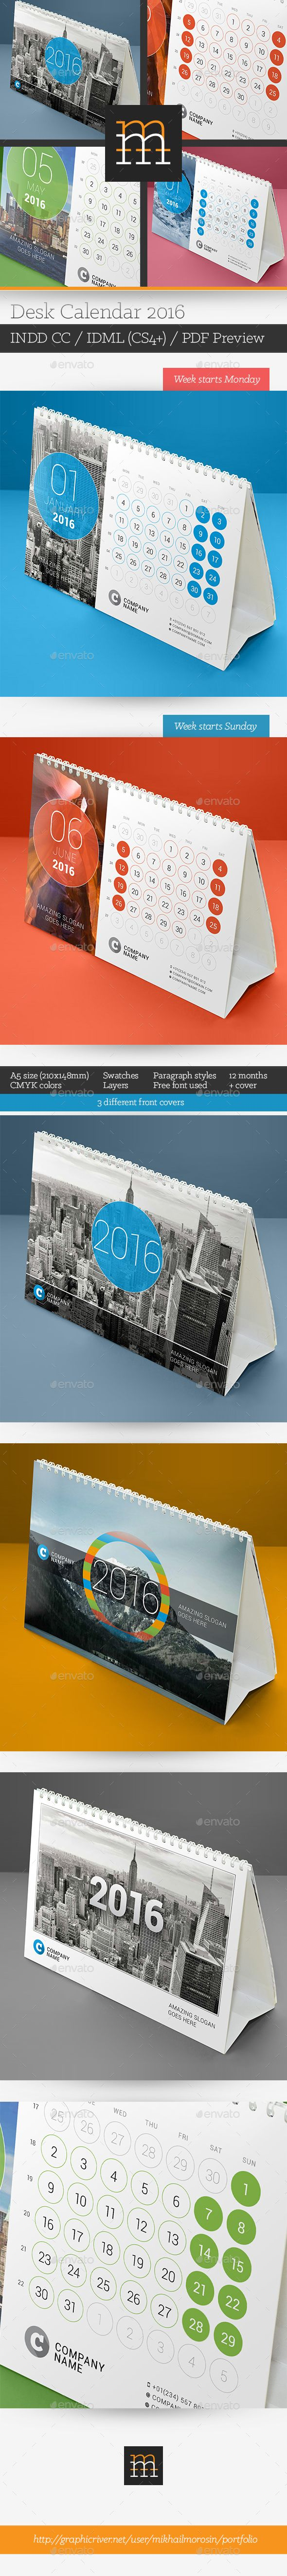 Desk Calendar 2016 Template InDesign INDD #design Download: http://graphicriver.net/item/desk-calendar-2016-/13542036?ref=ksioks